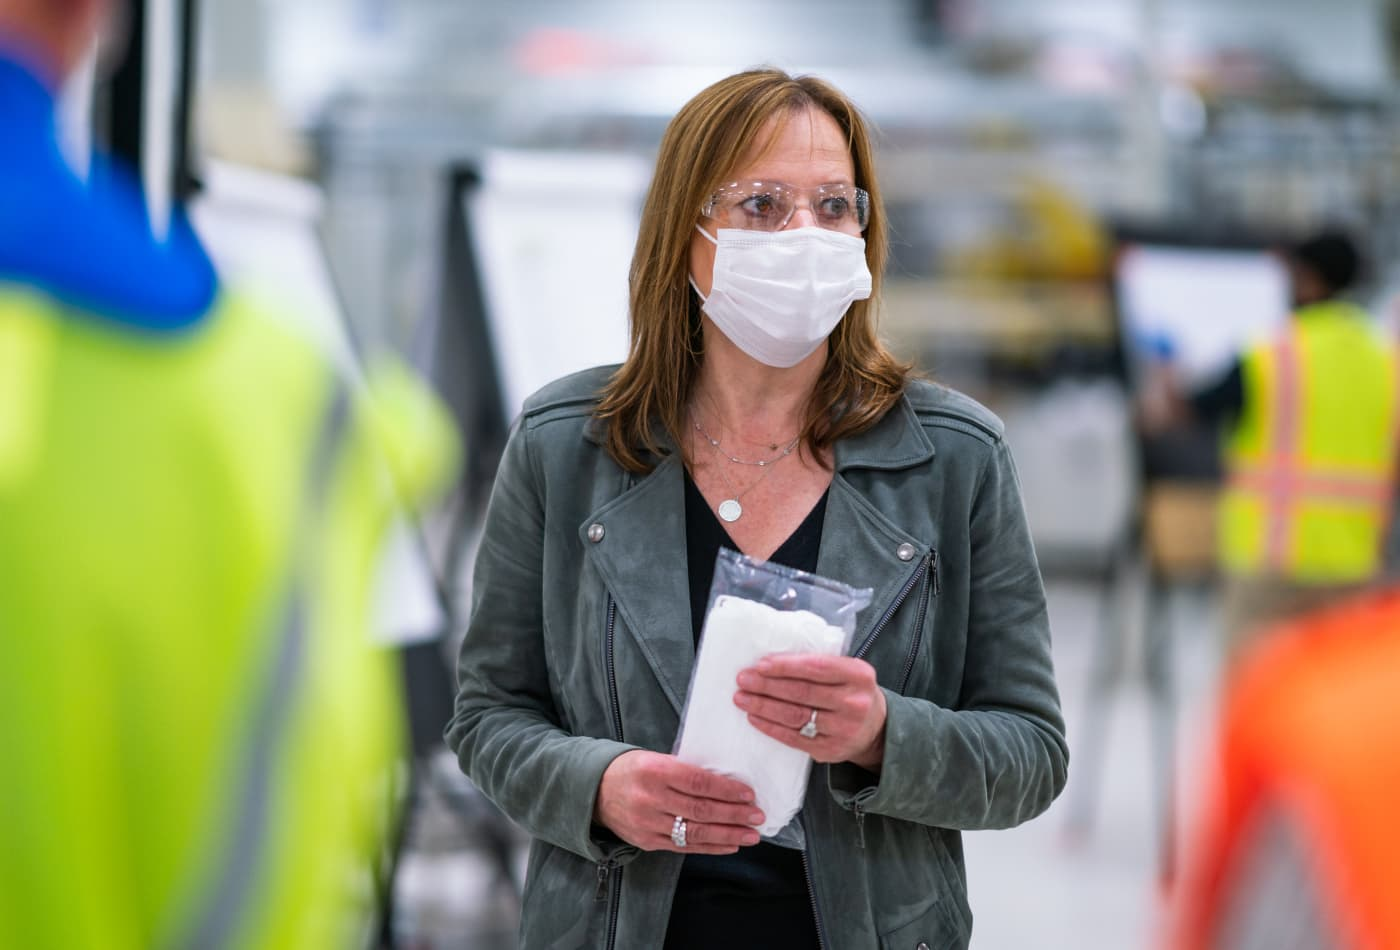 GM offers manufacturing blueprints for face masks to 600 auto parts suppliers amid virus pandemic